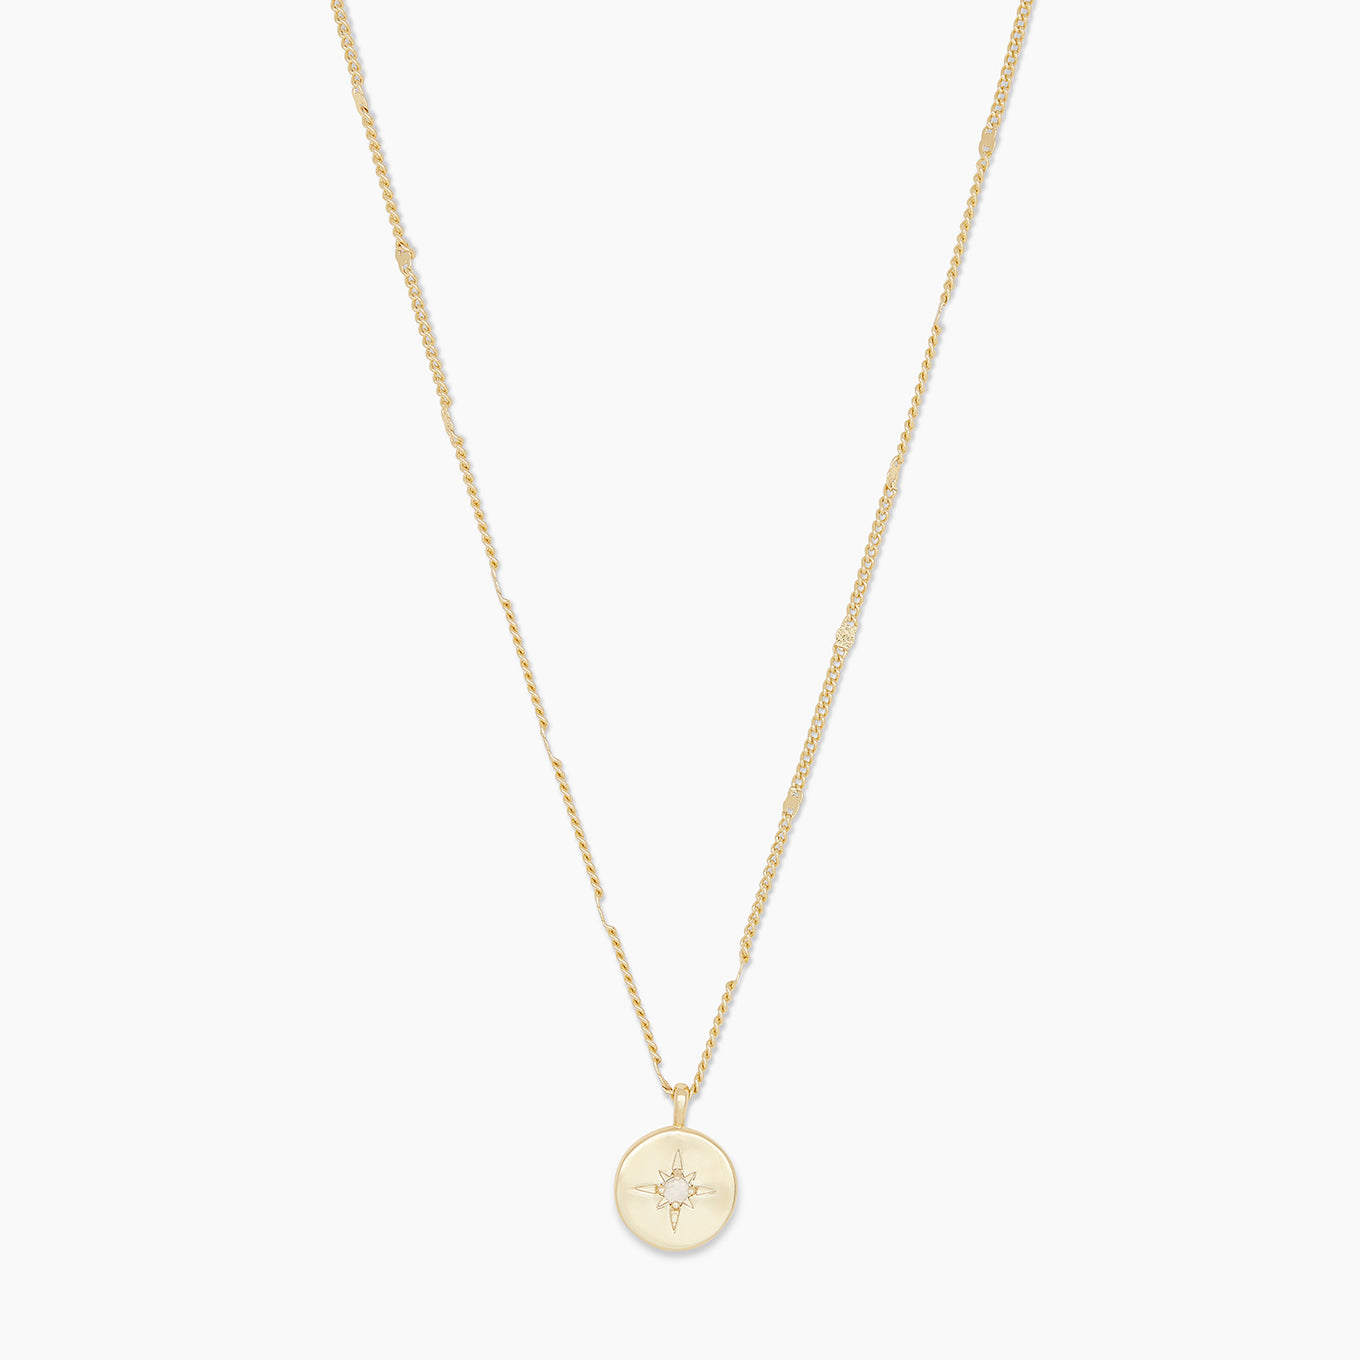 Gorjana Jewelry Gold Power Birthstone Coin Necklace April